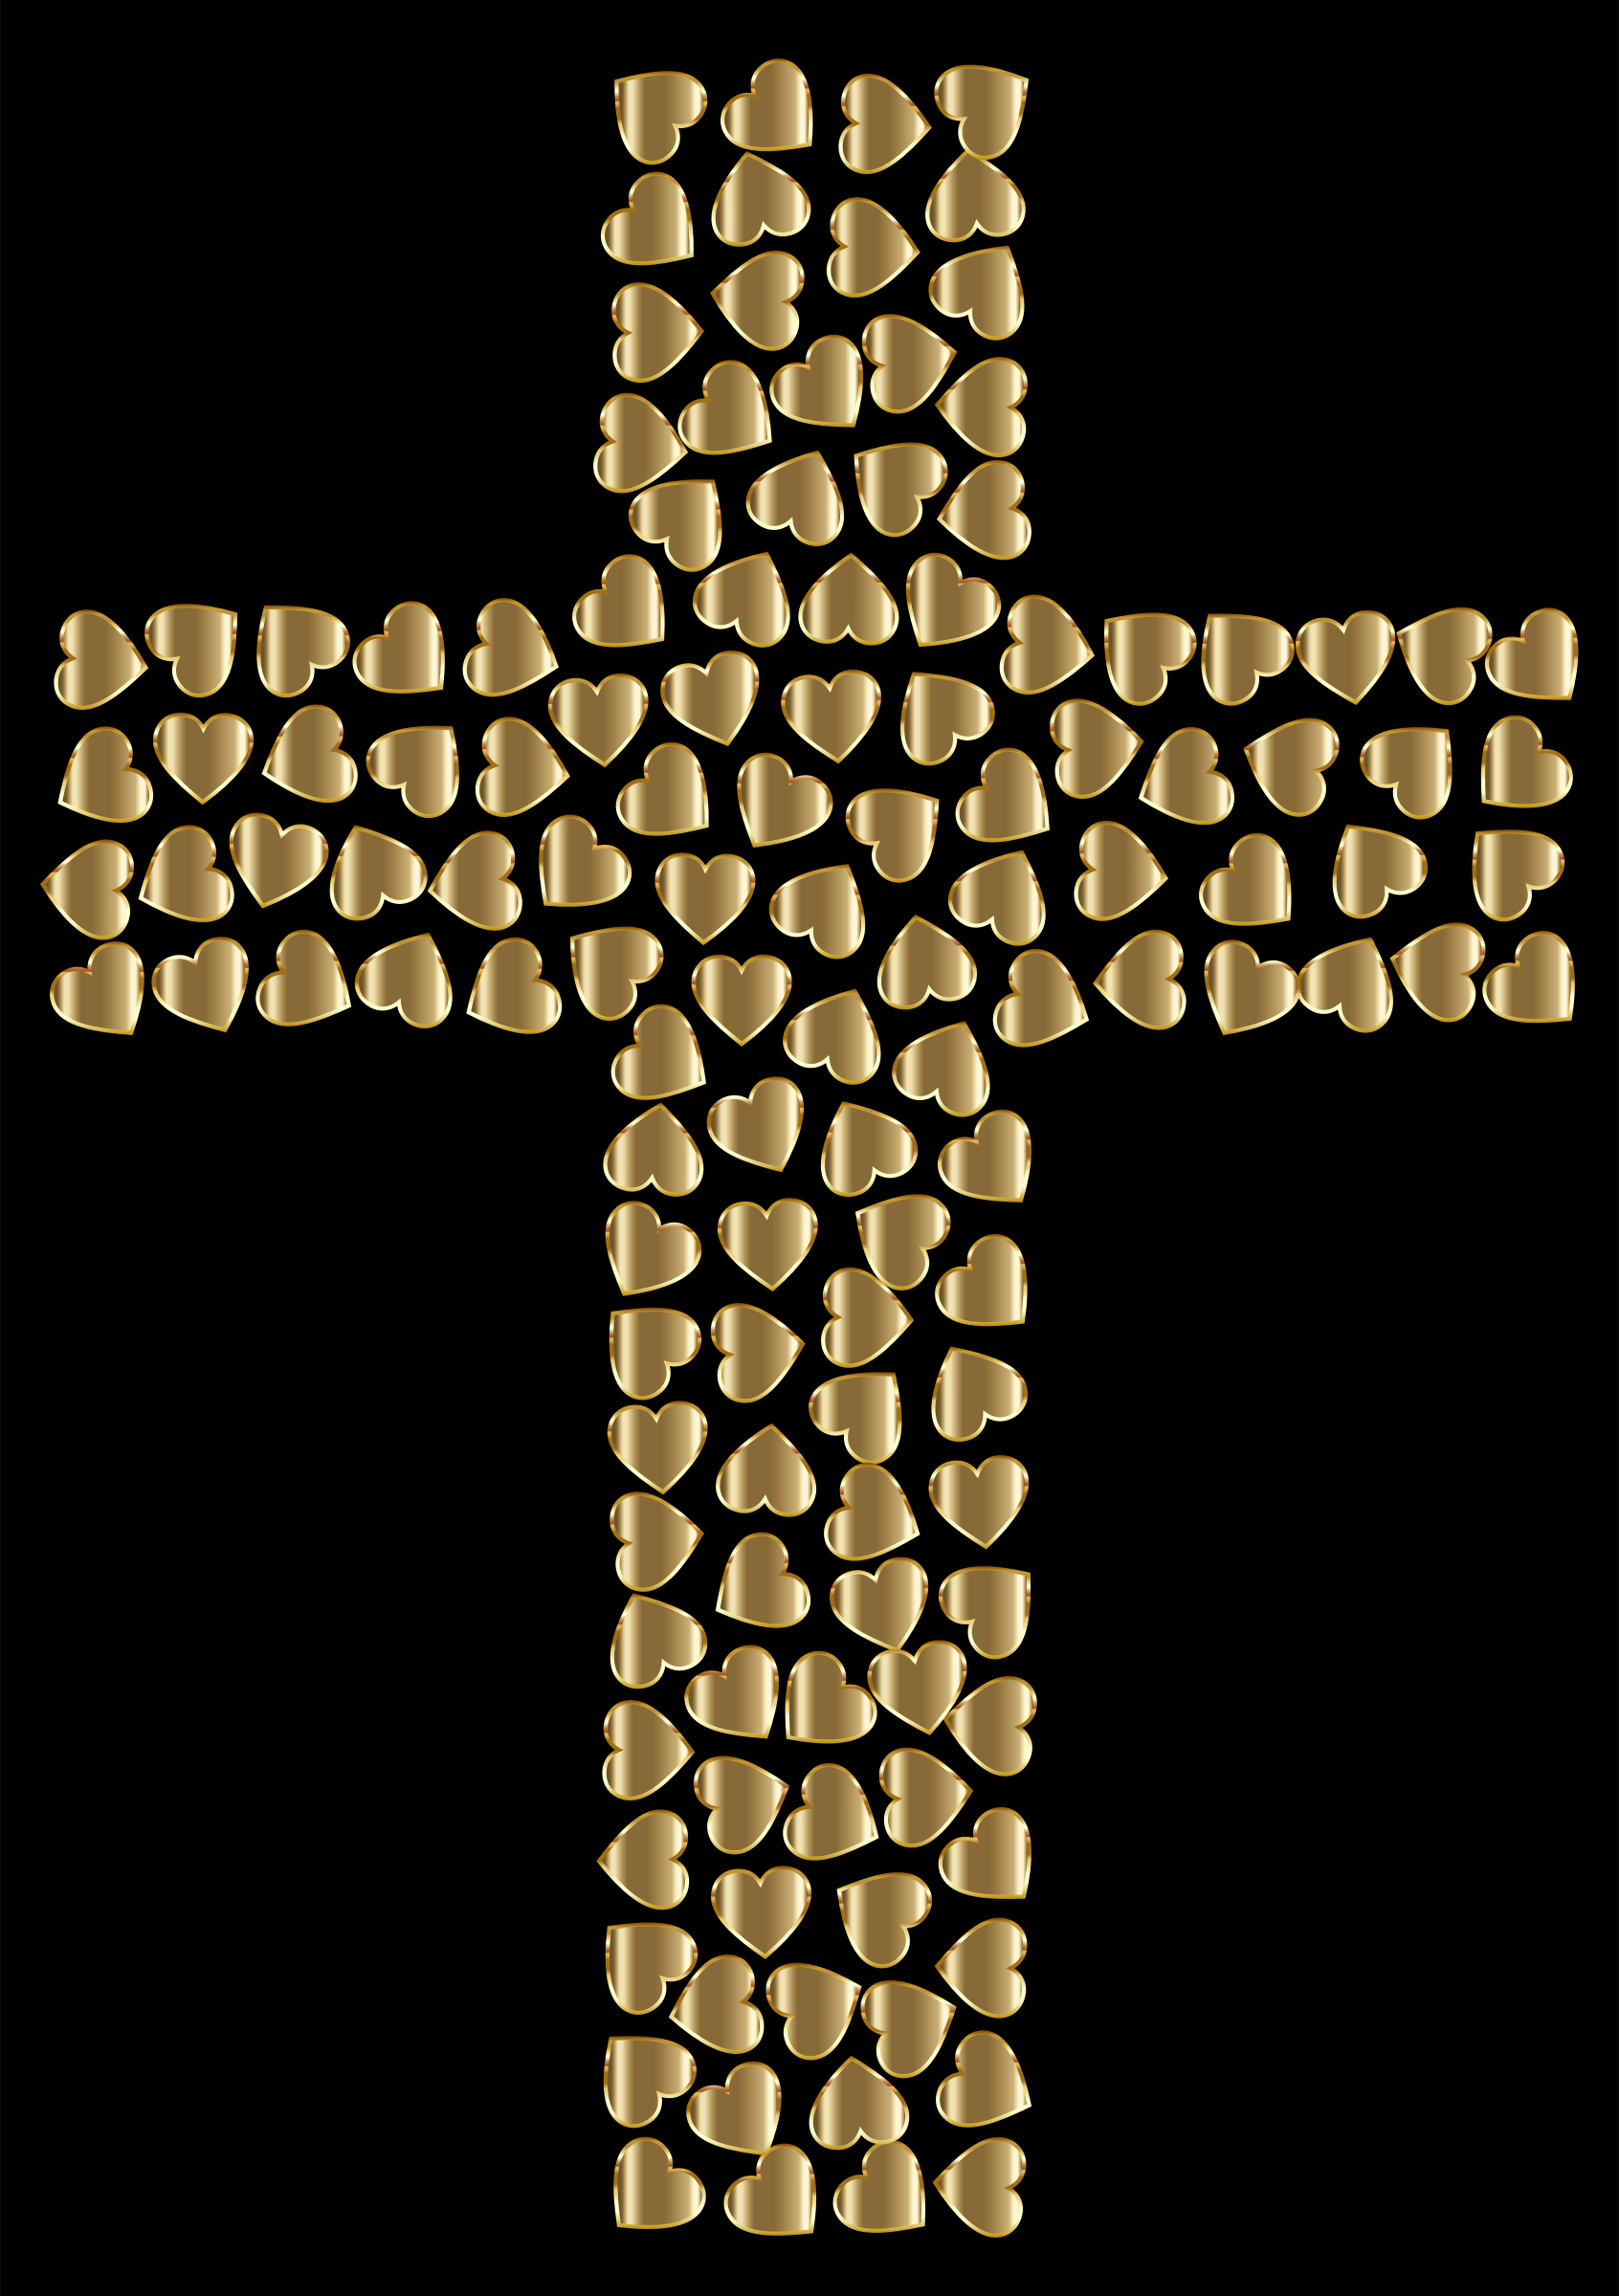 Golden Hearts Cross by GDJ